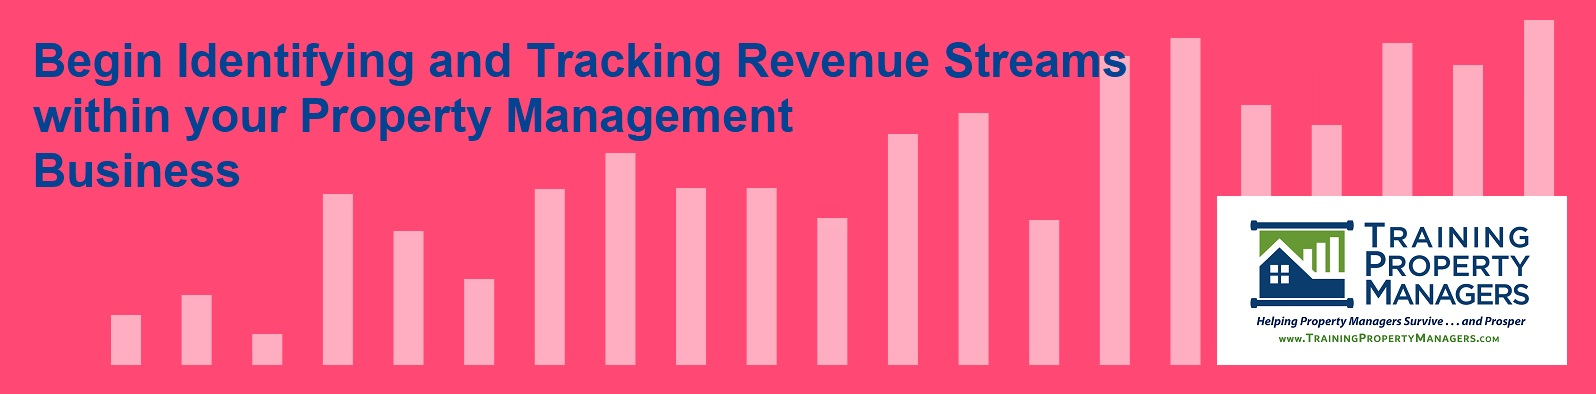 Begin to Identify and Track RevenueStreams within your Property Management Business